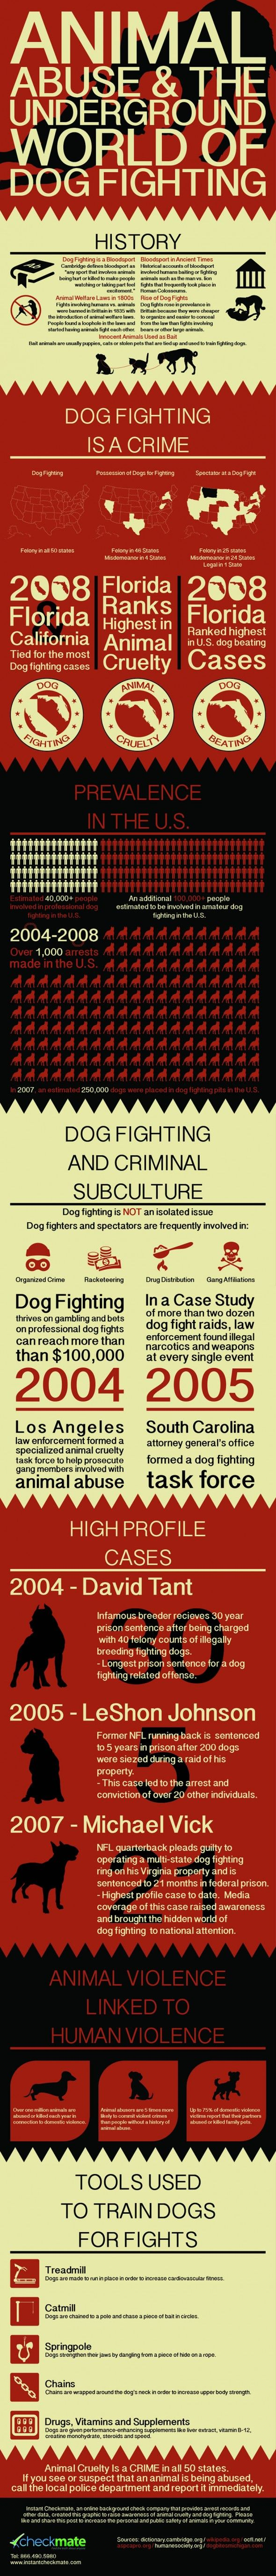 #INFOGRAPHIC: Animal Abuse and the Underground World of Dog Fighting